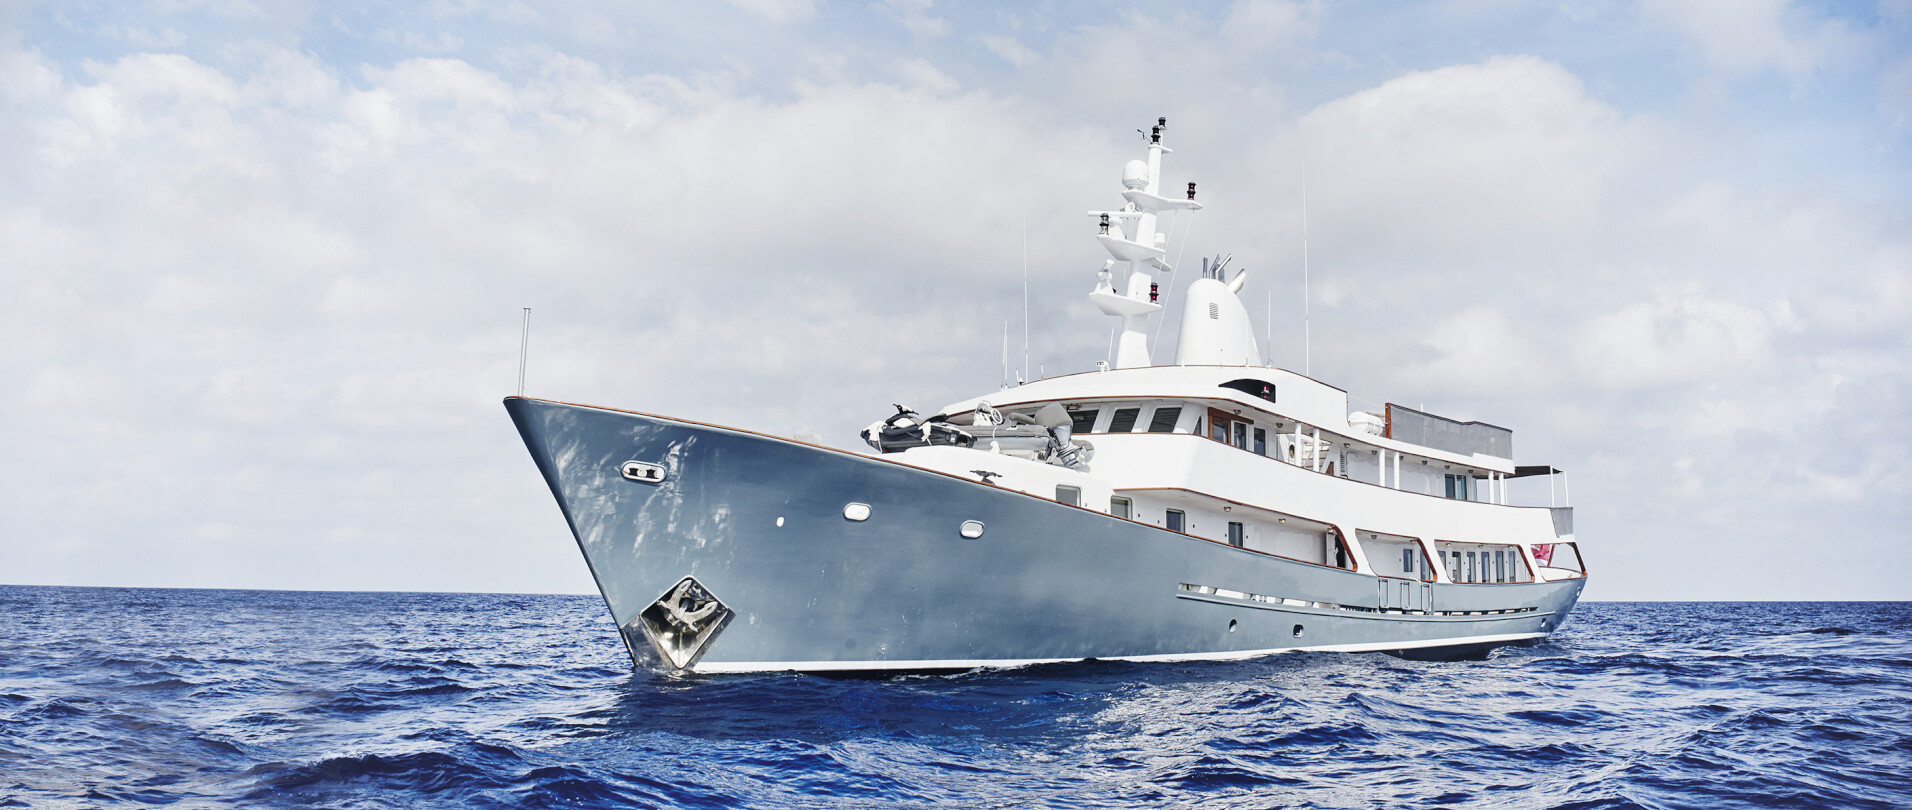 MENORCA's 'Magical' First Charter of the Season, Read the Client Feedback photo 1